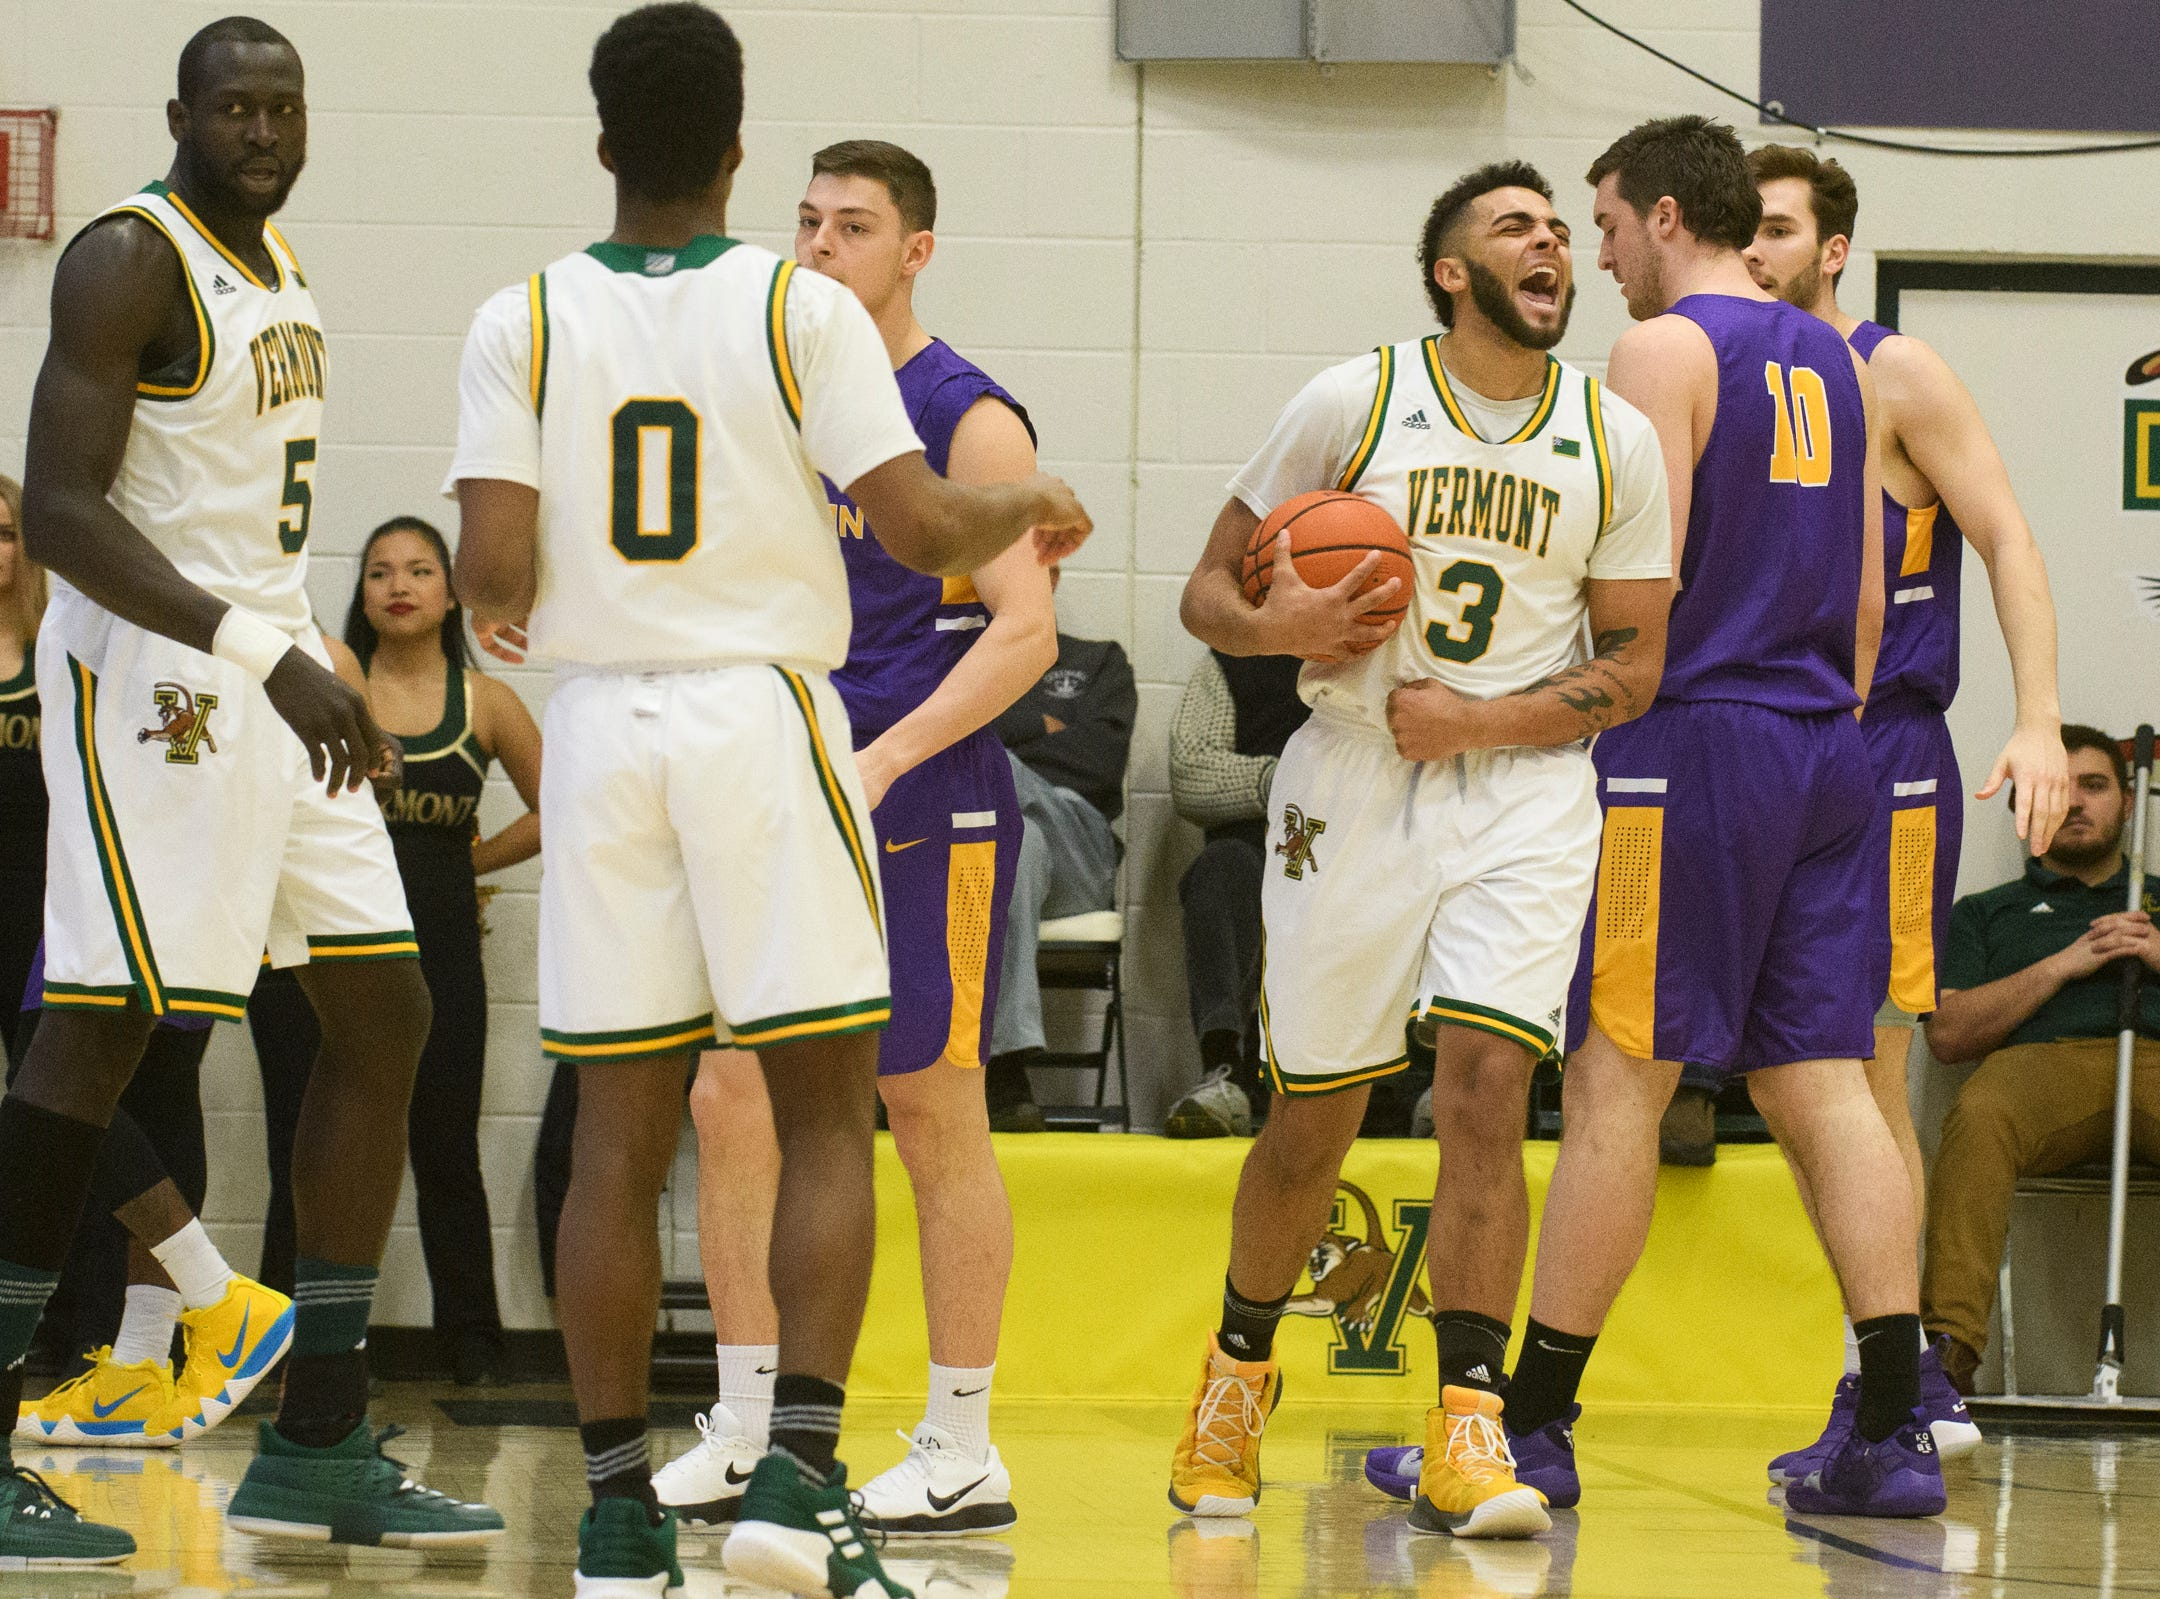 Vermont forward Anthony Lamb (3) reacts after a foul call on Albany during the men's basketball game between the Albany Great Danes and the Vermont Catamounts at Patrick Gym on Saturday February 9, 2019 in Burlington, Vermont.